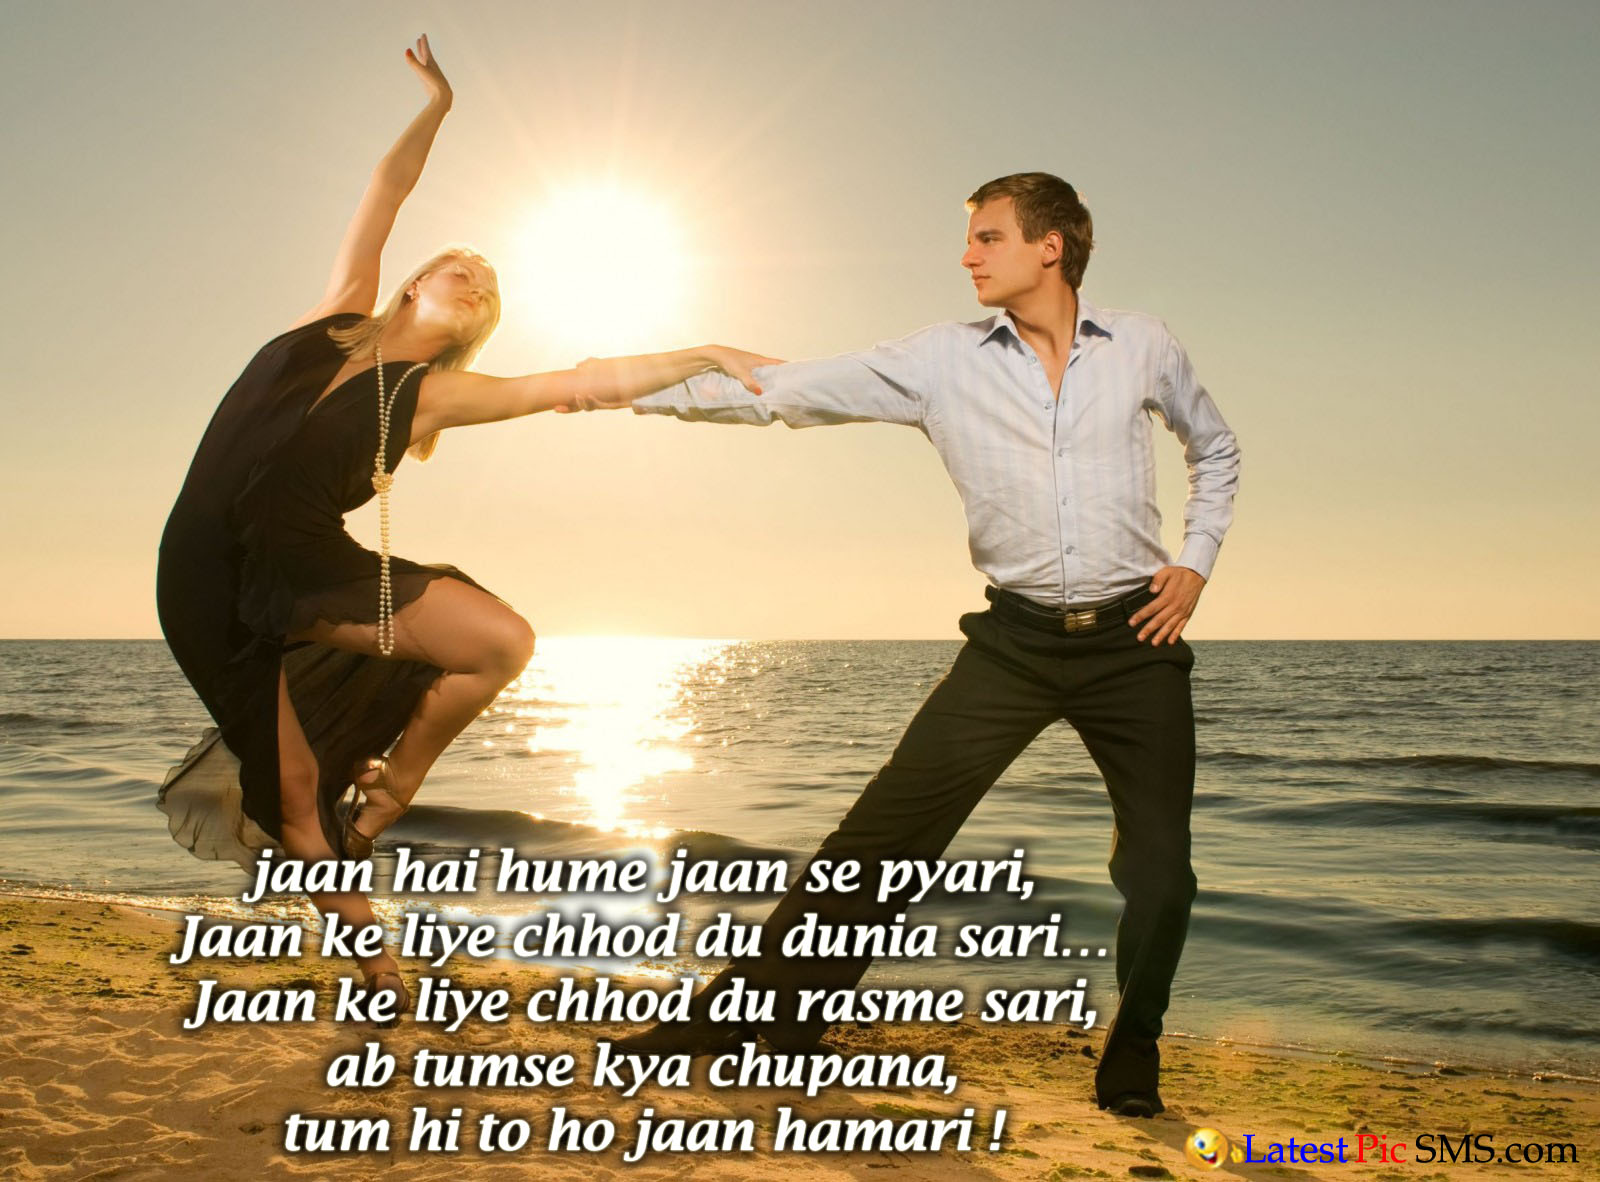 man attracted to u love delicate dance with romance shyari - Famous Love Shayari for True Lovers for Whatsapp and Facebook